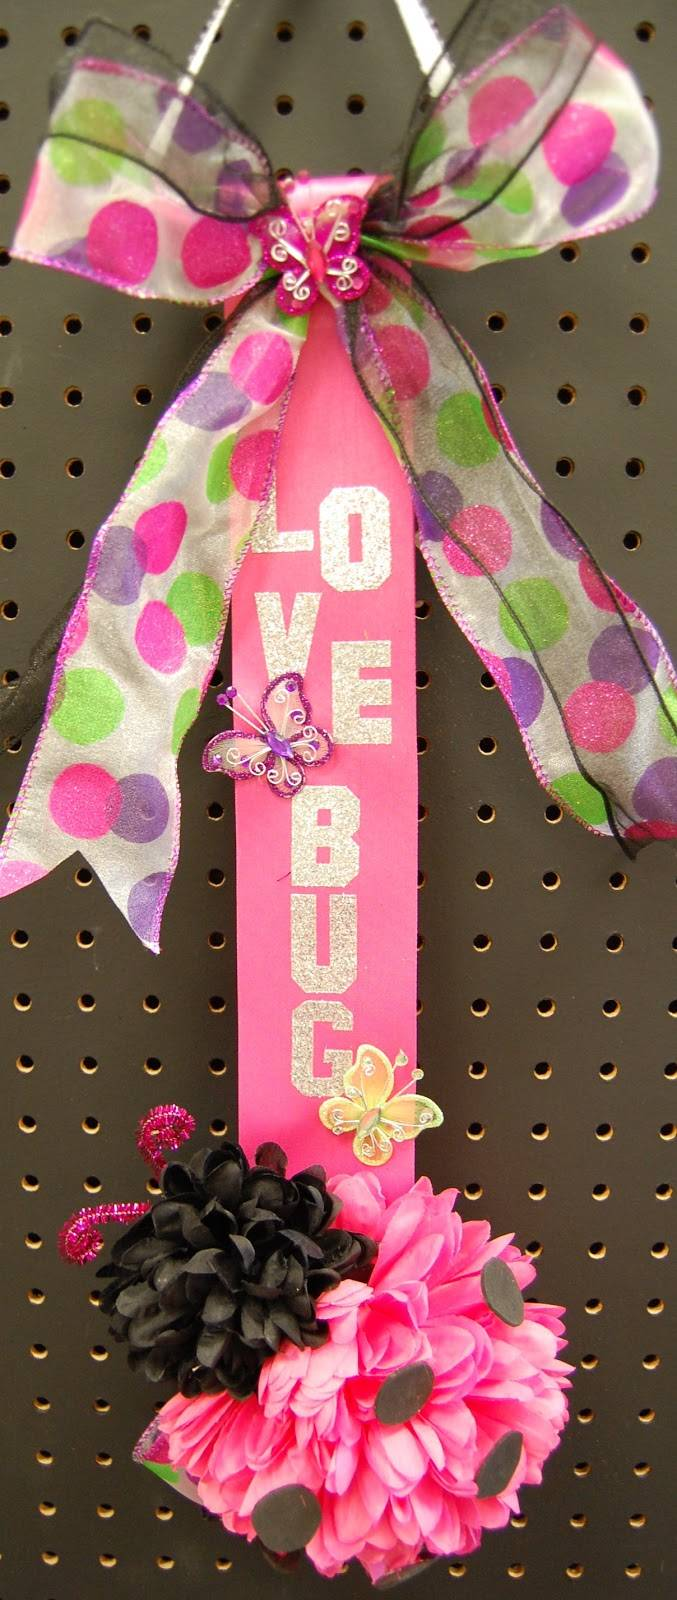 Moms Mums n More - home goods store  | Photo 4 of 9 | Address: 1744 Mall Cir, Fort Worth, TX 76116, USA | Phone: (817) 386-4273